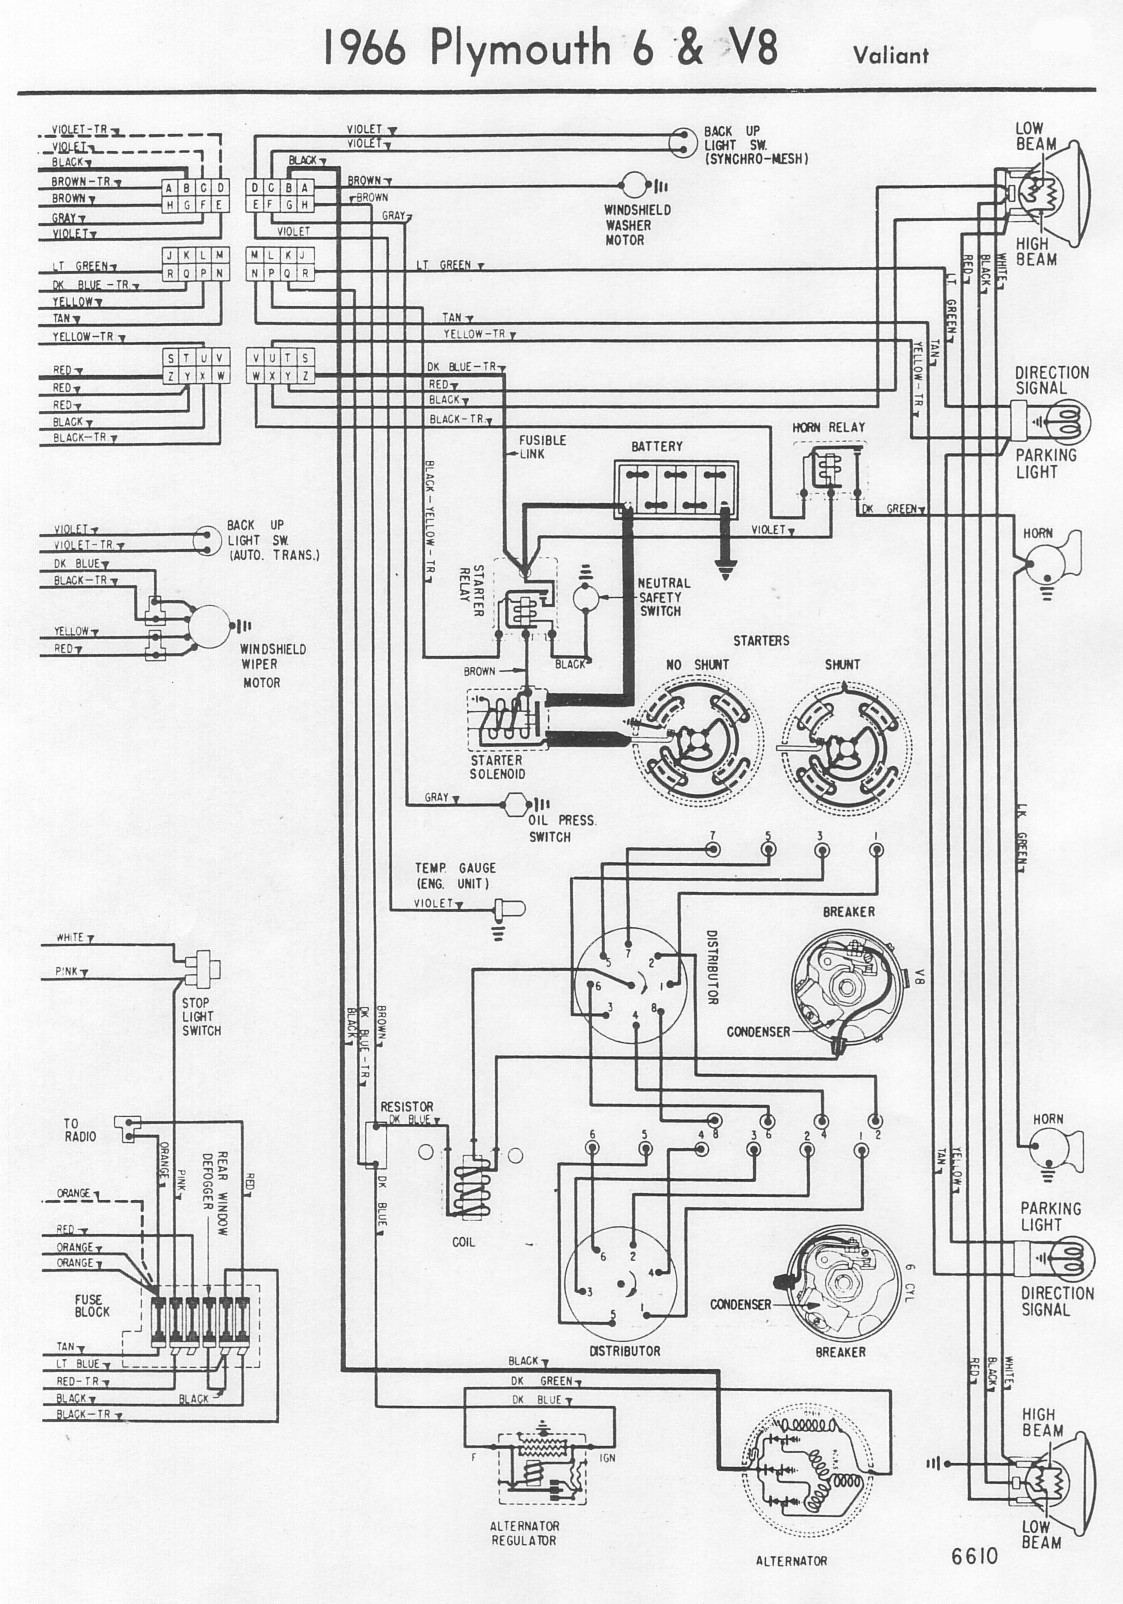 1967 plymouth wiring diagram wiring diagramwiring diagram for 1966 plymouth barracuda wiring diagram schema1966 barracuda wiring harness wiring diagram de 1967